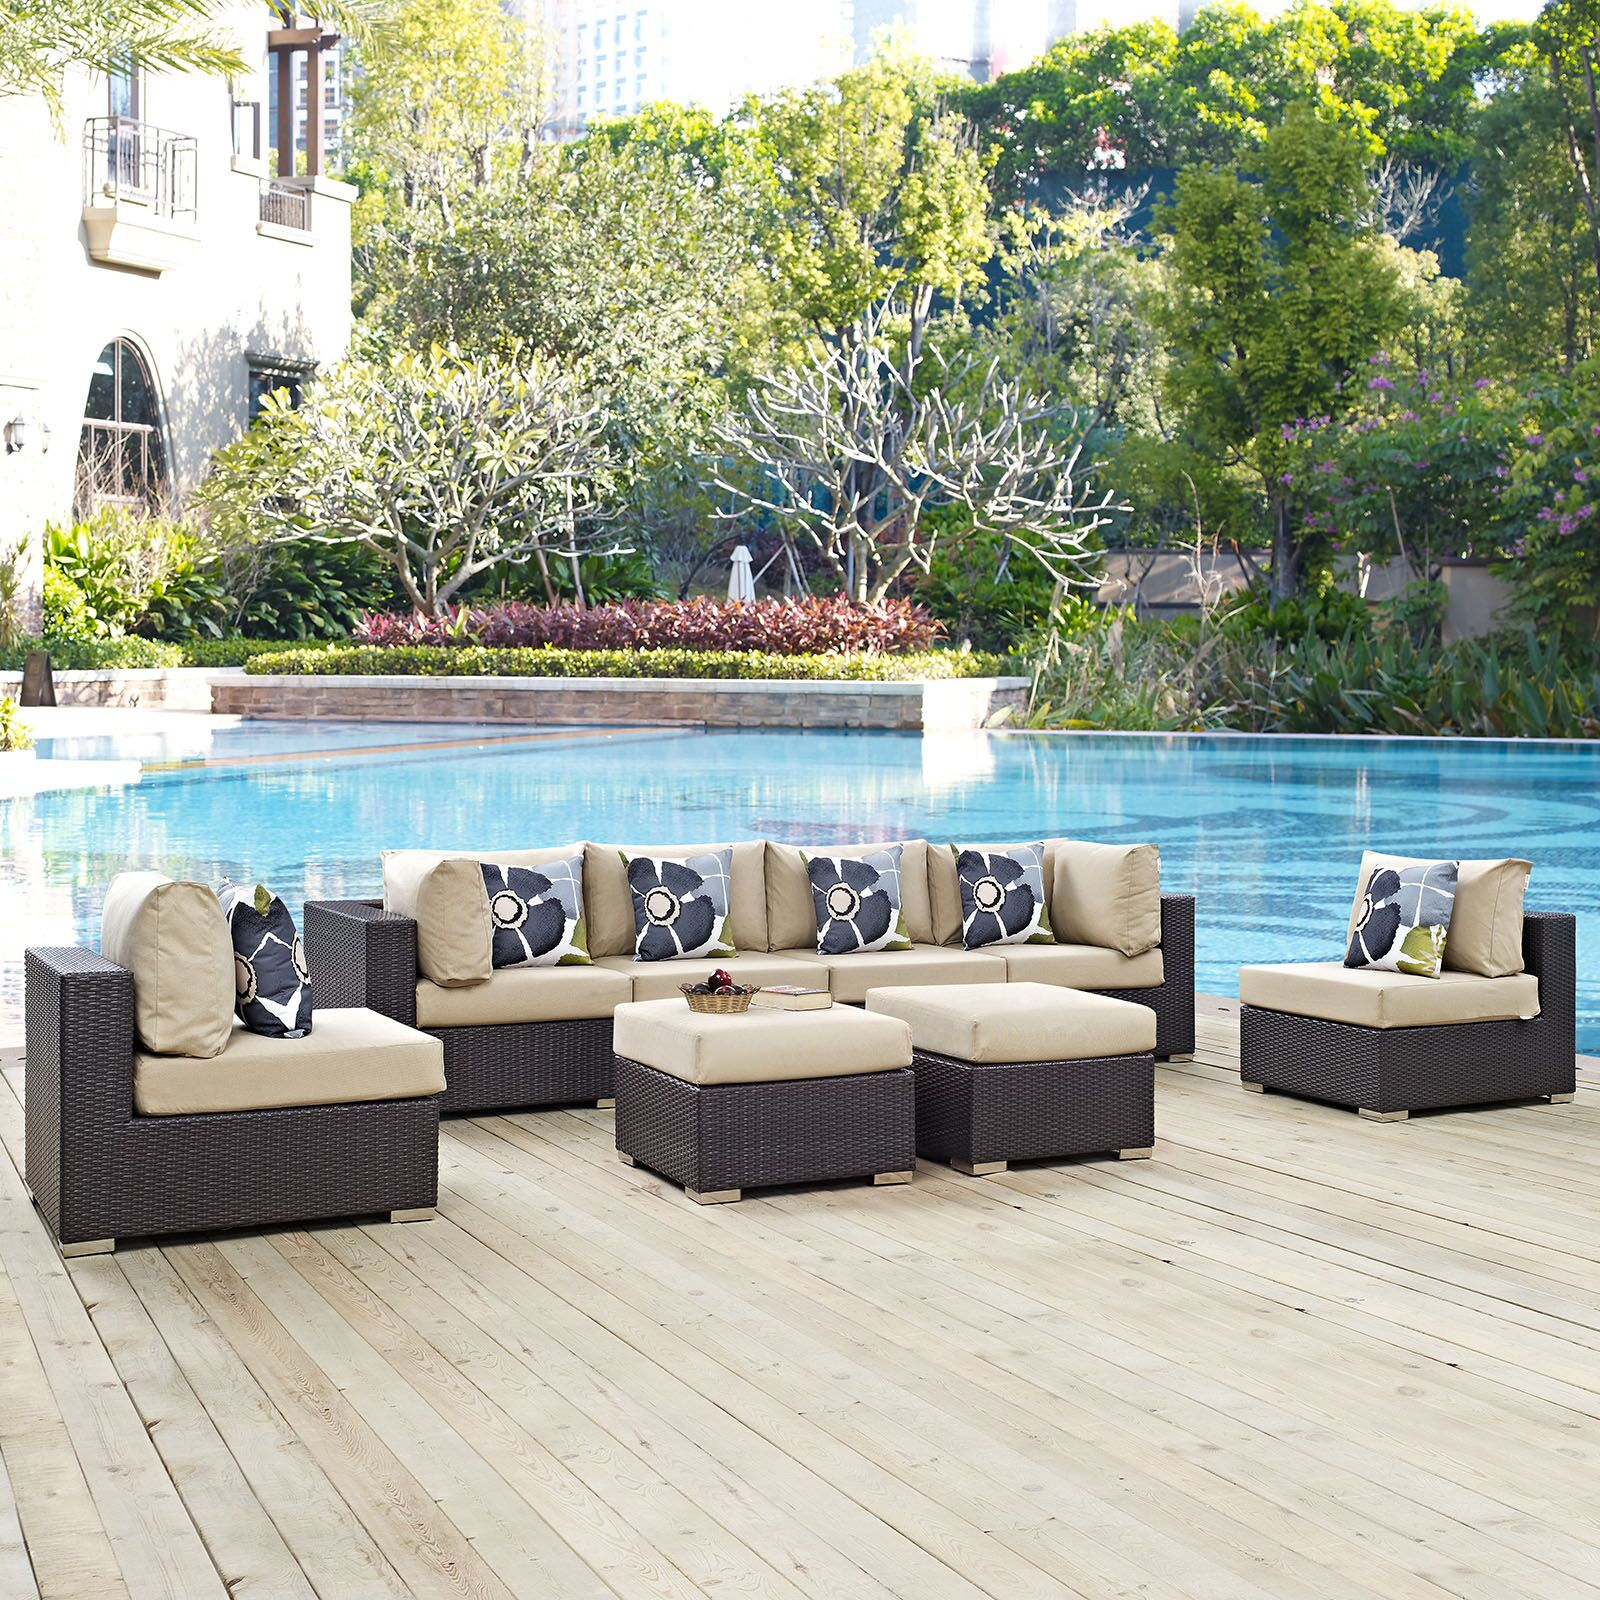 Ryele 8 Piece Rattan Sectional Set with Cushions Fabric: Beige